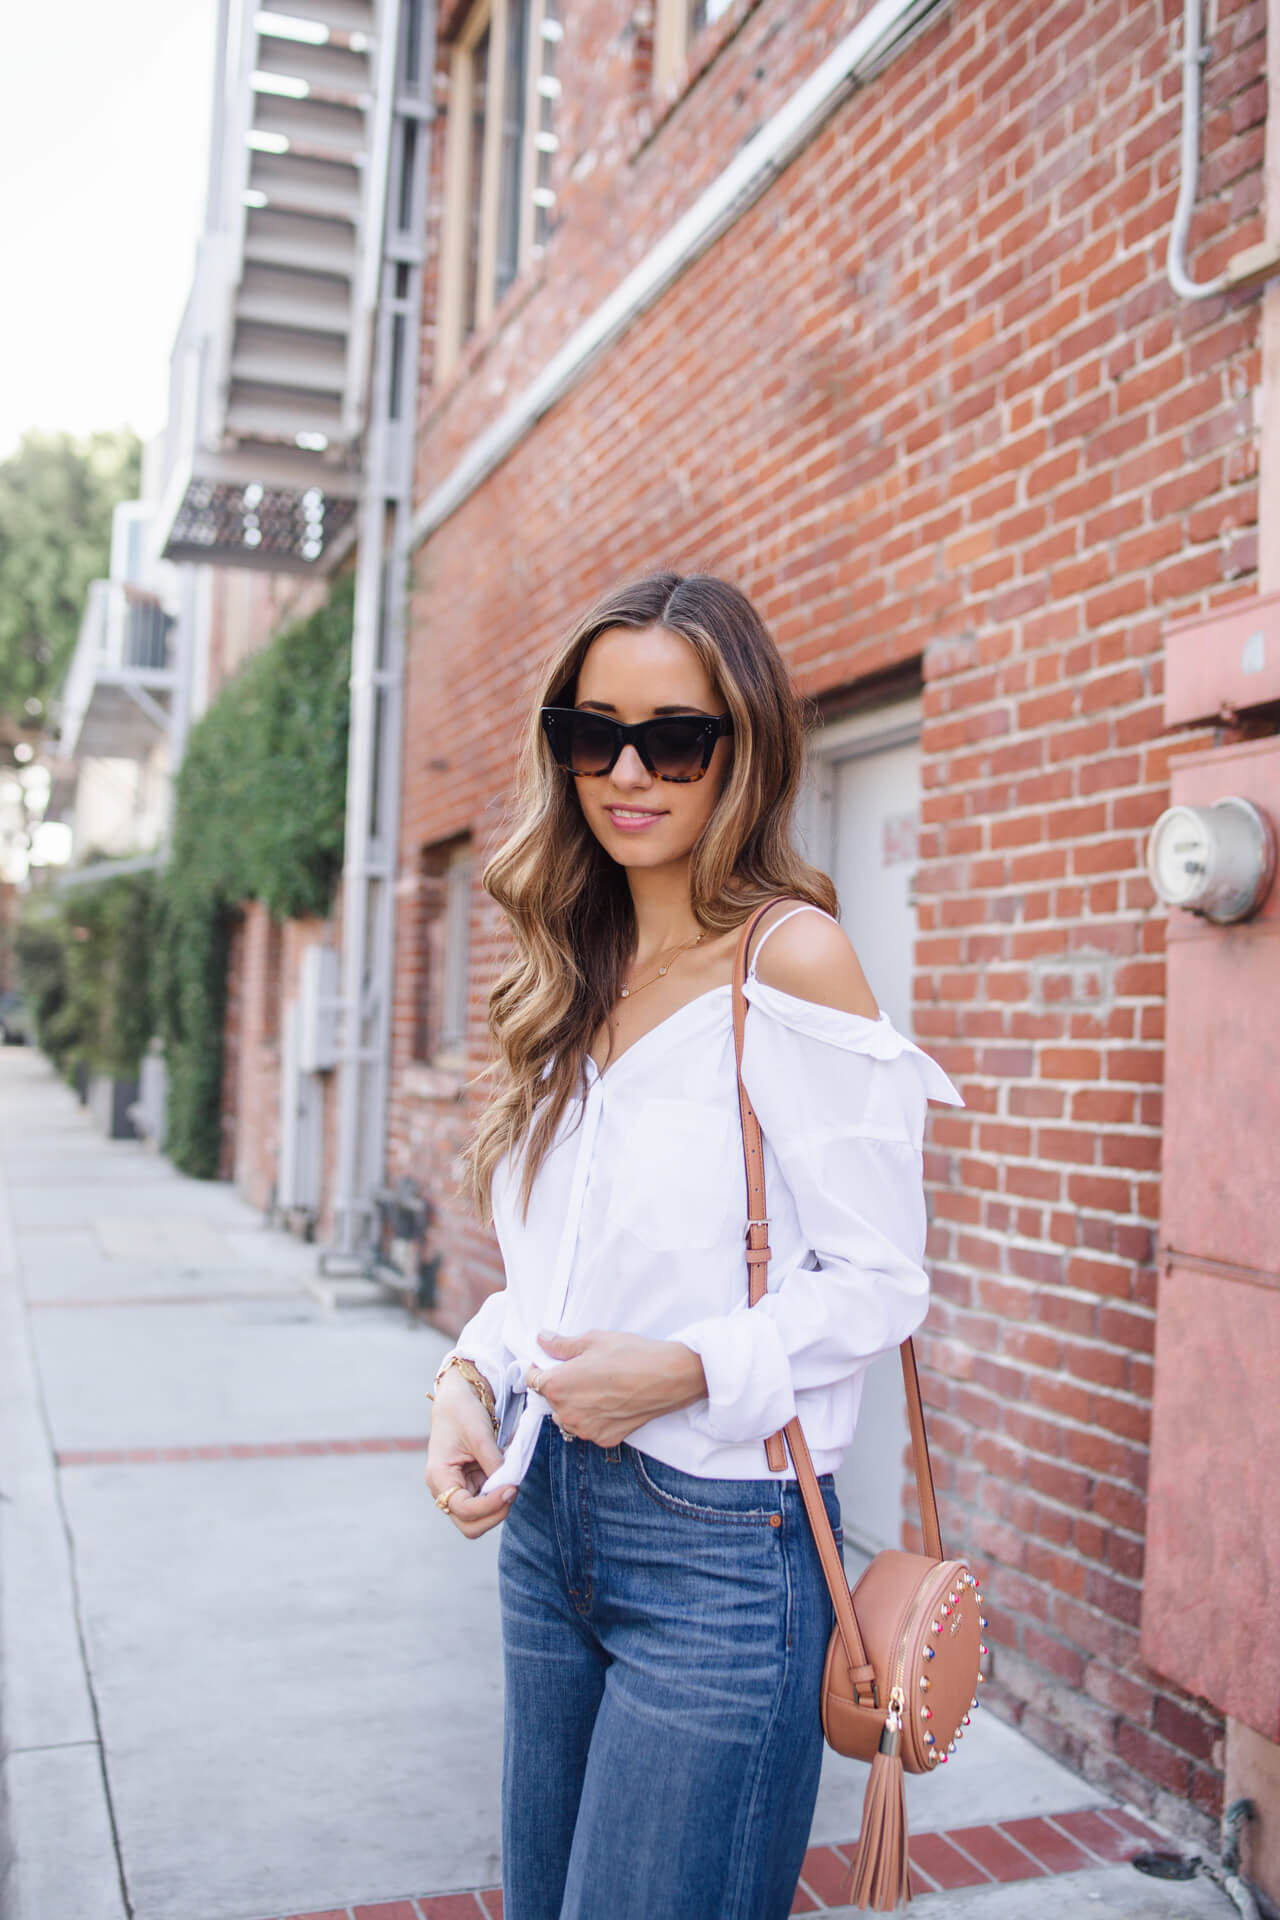 classic outfit inspiration - white button up with jeans